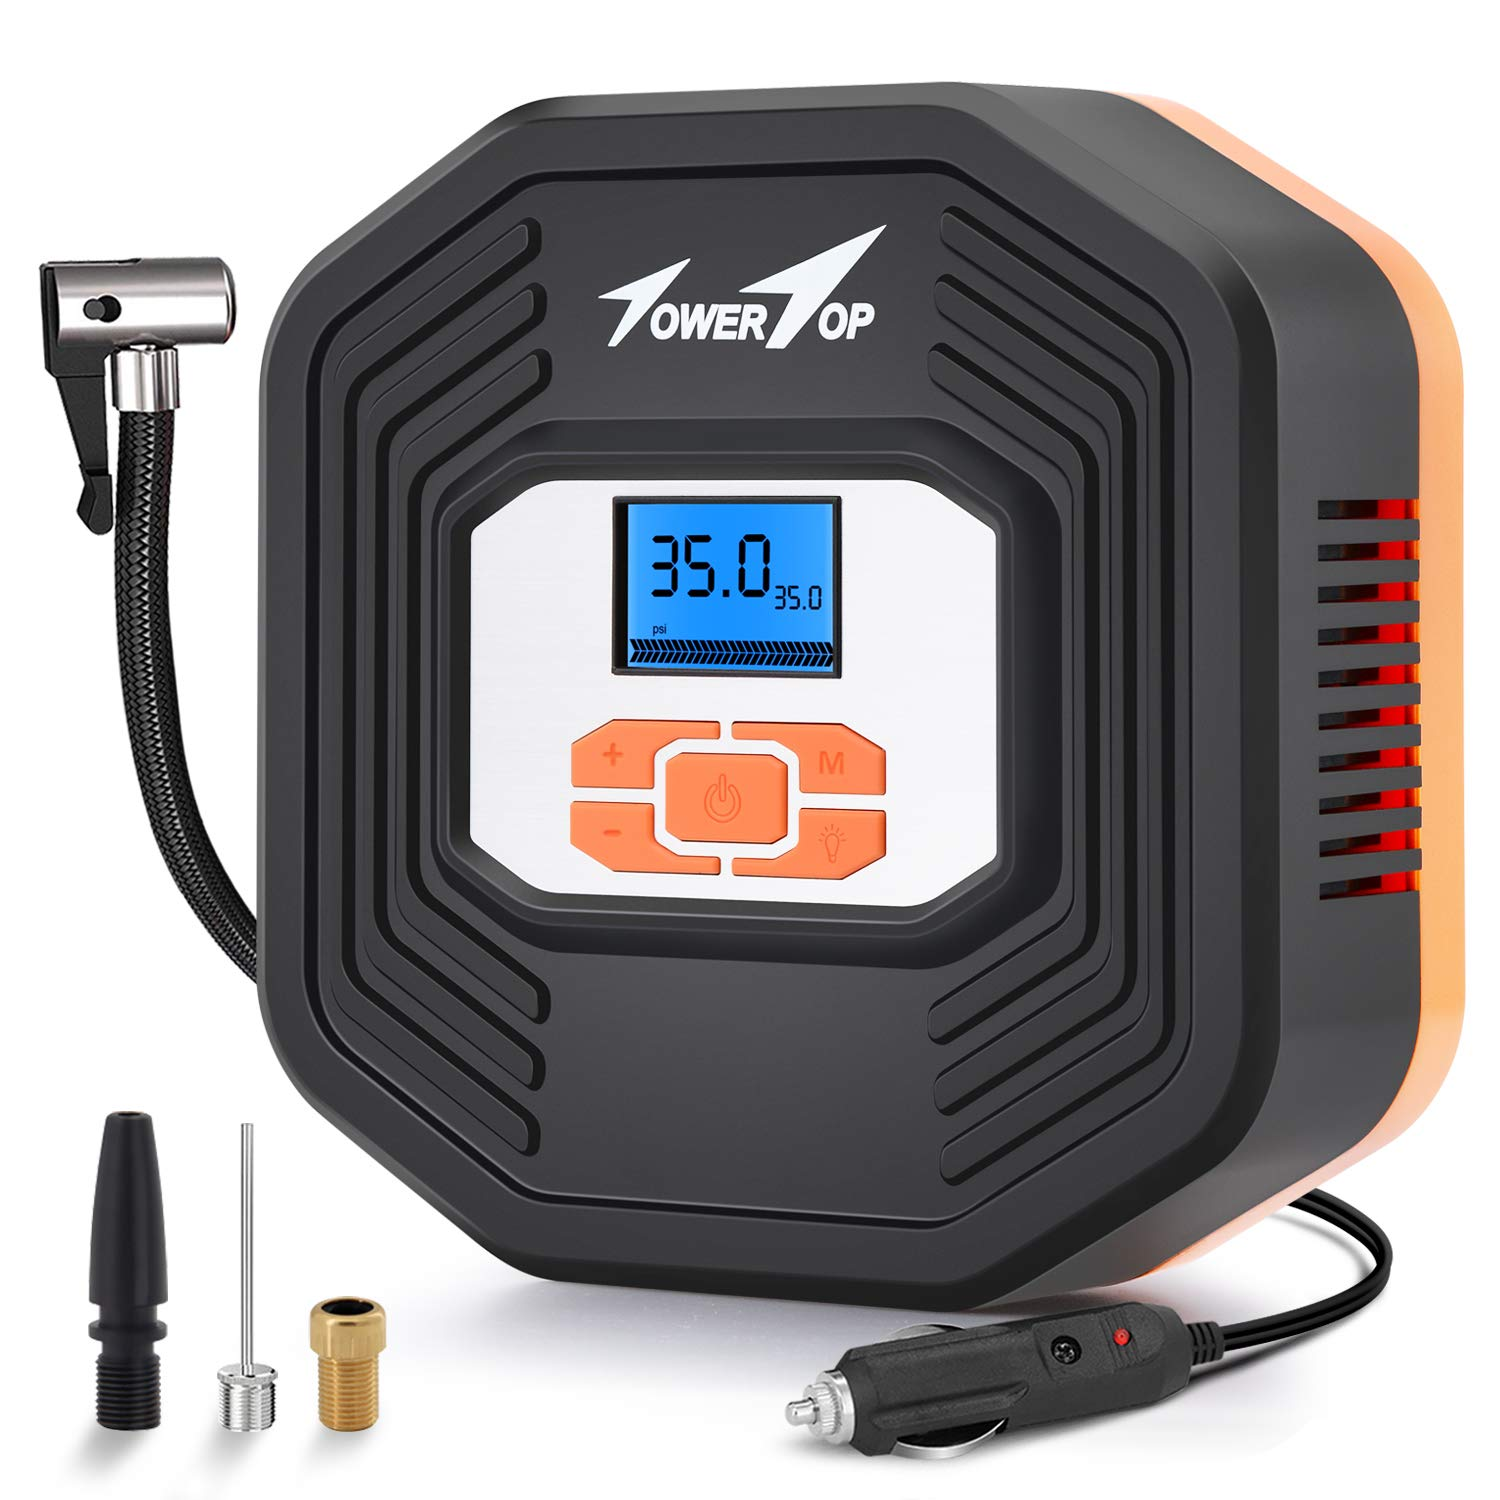 Towertop Digital Tyre Inflator, 12V DC Portable Air Compressor Pump, Car Tire Pump with LED Light and LCD Digital Display